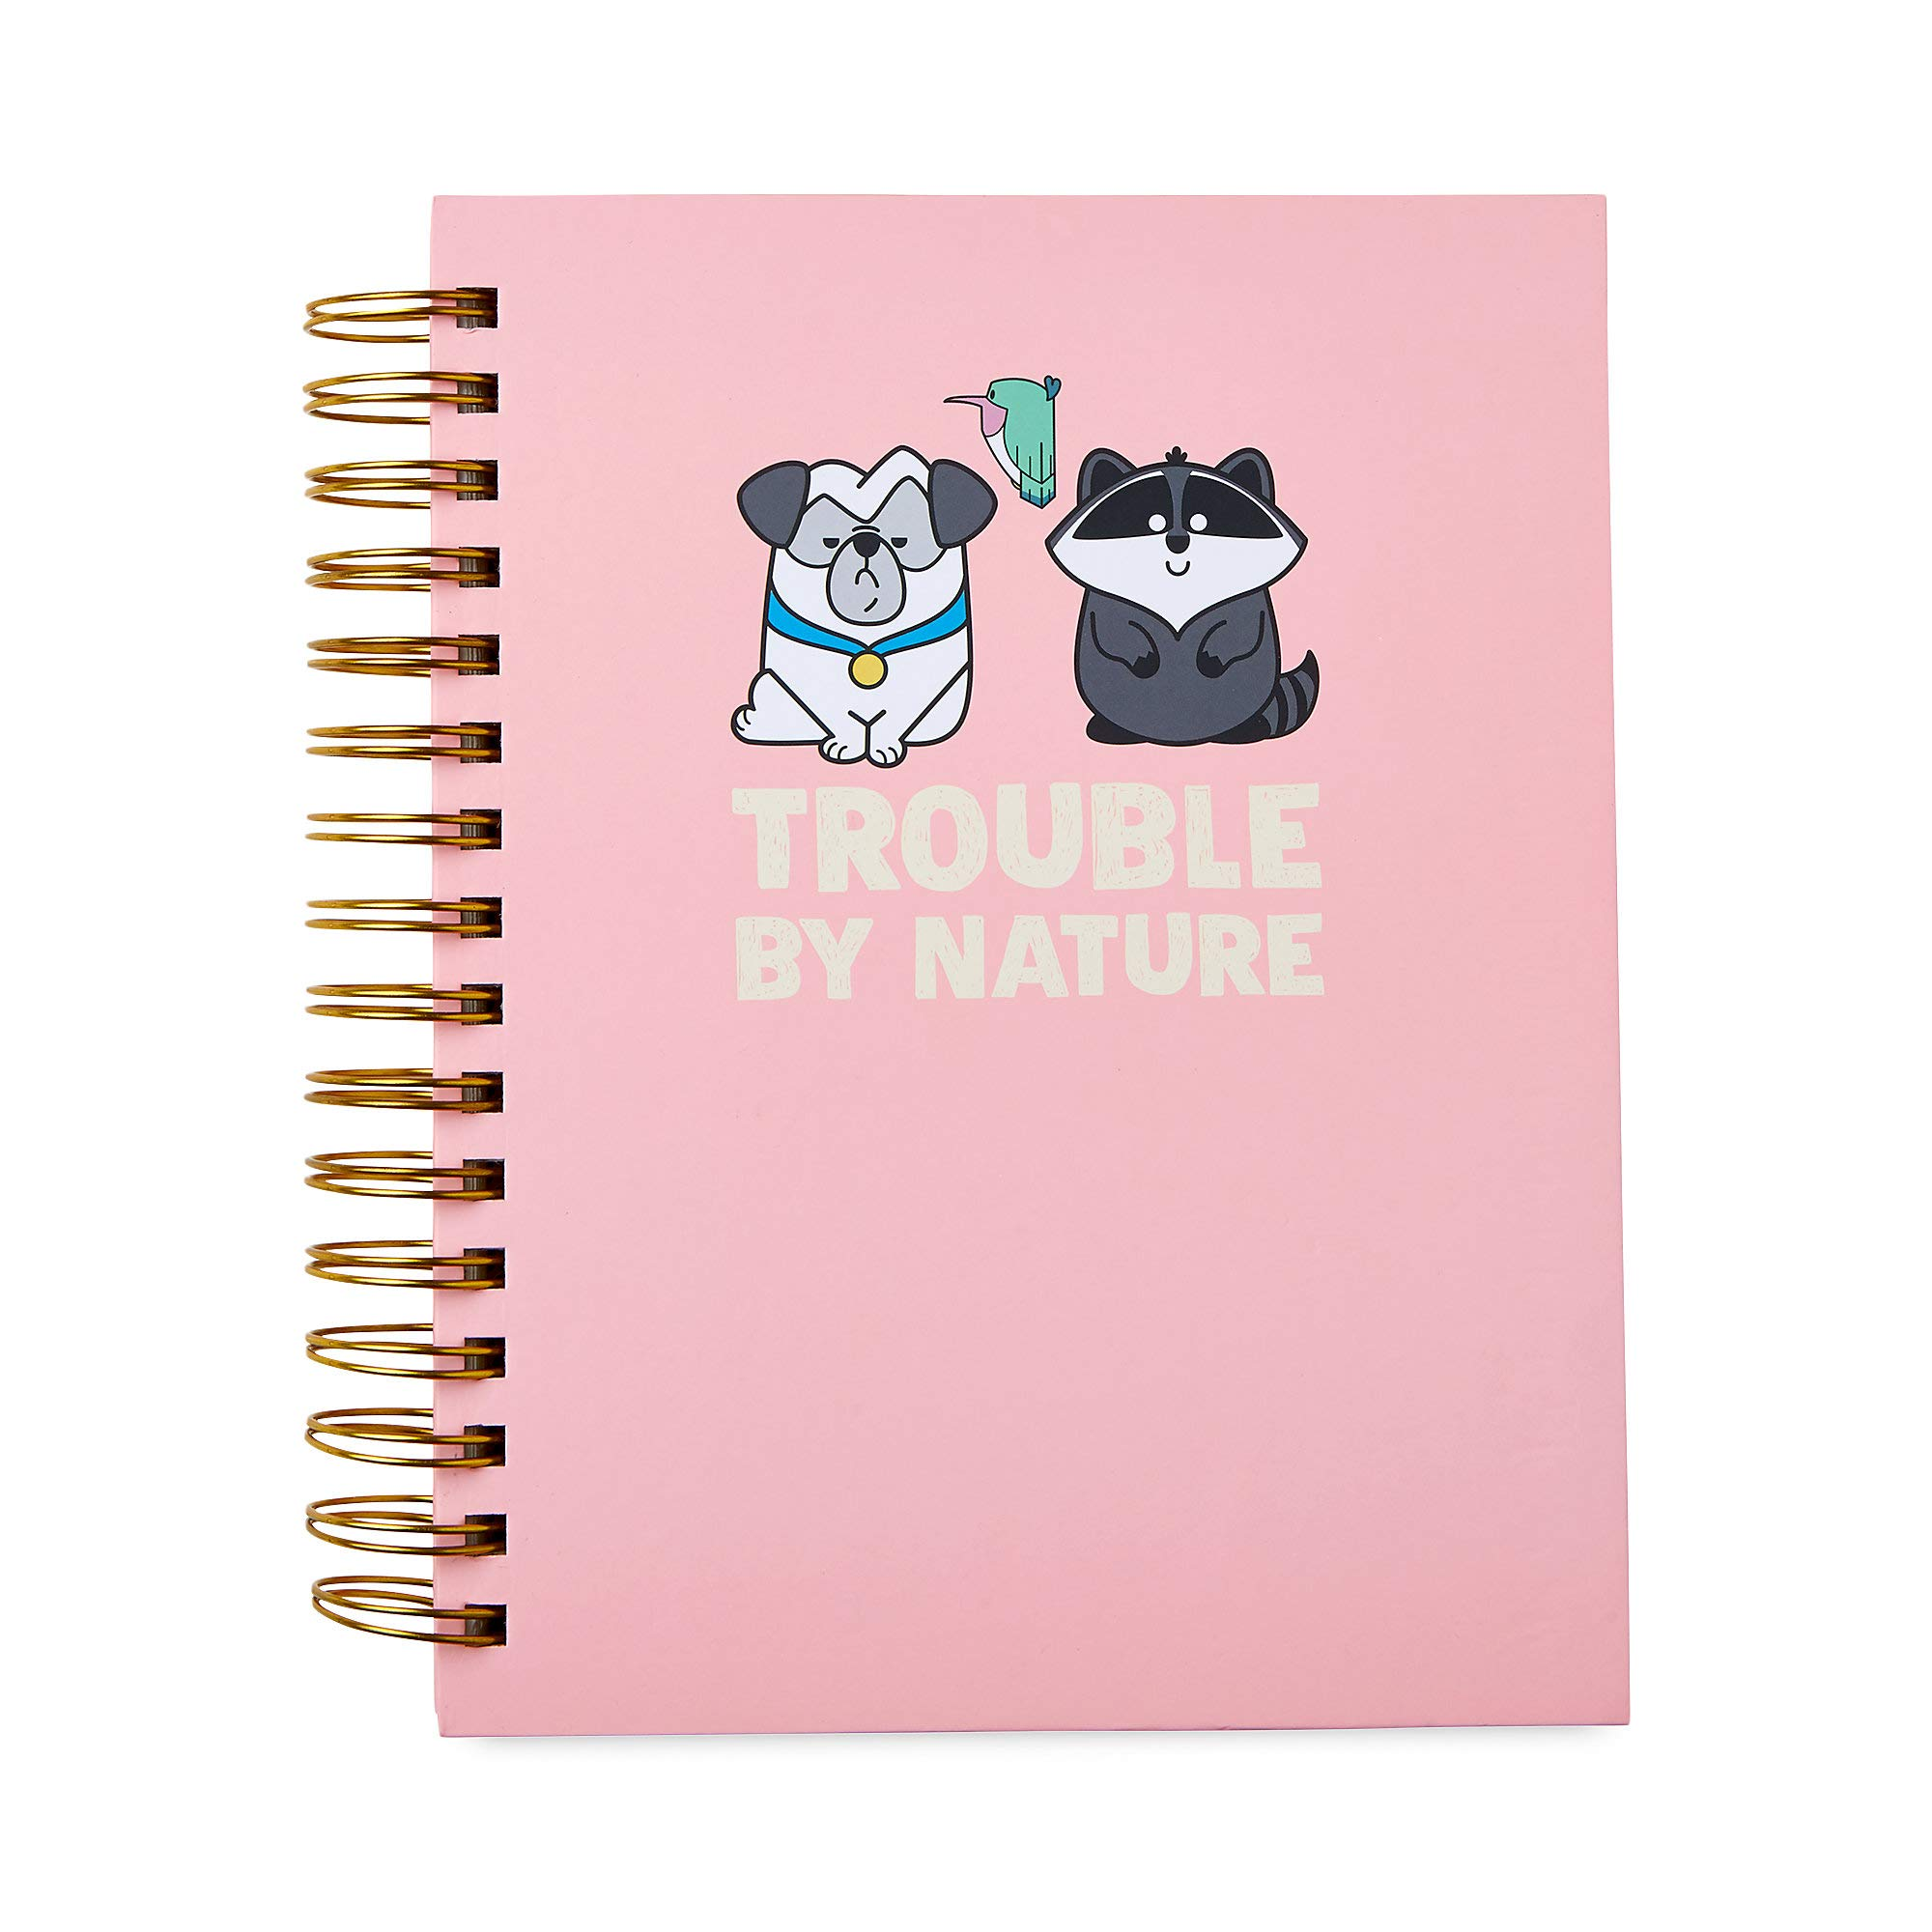 Disney Percy, Flit, and Meeko ''Trouble by Nature'' Journal - Pocahontas